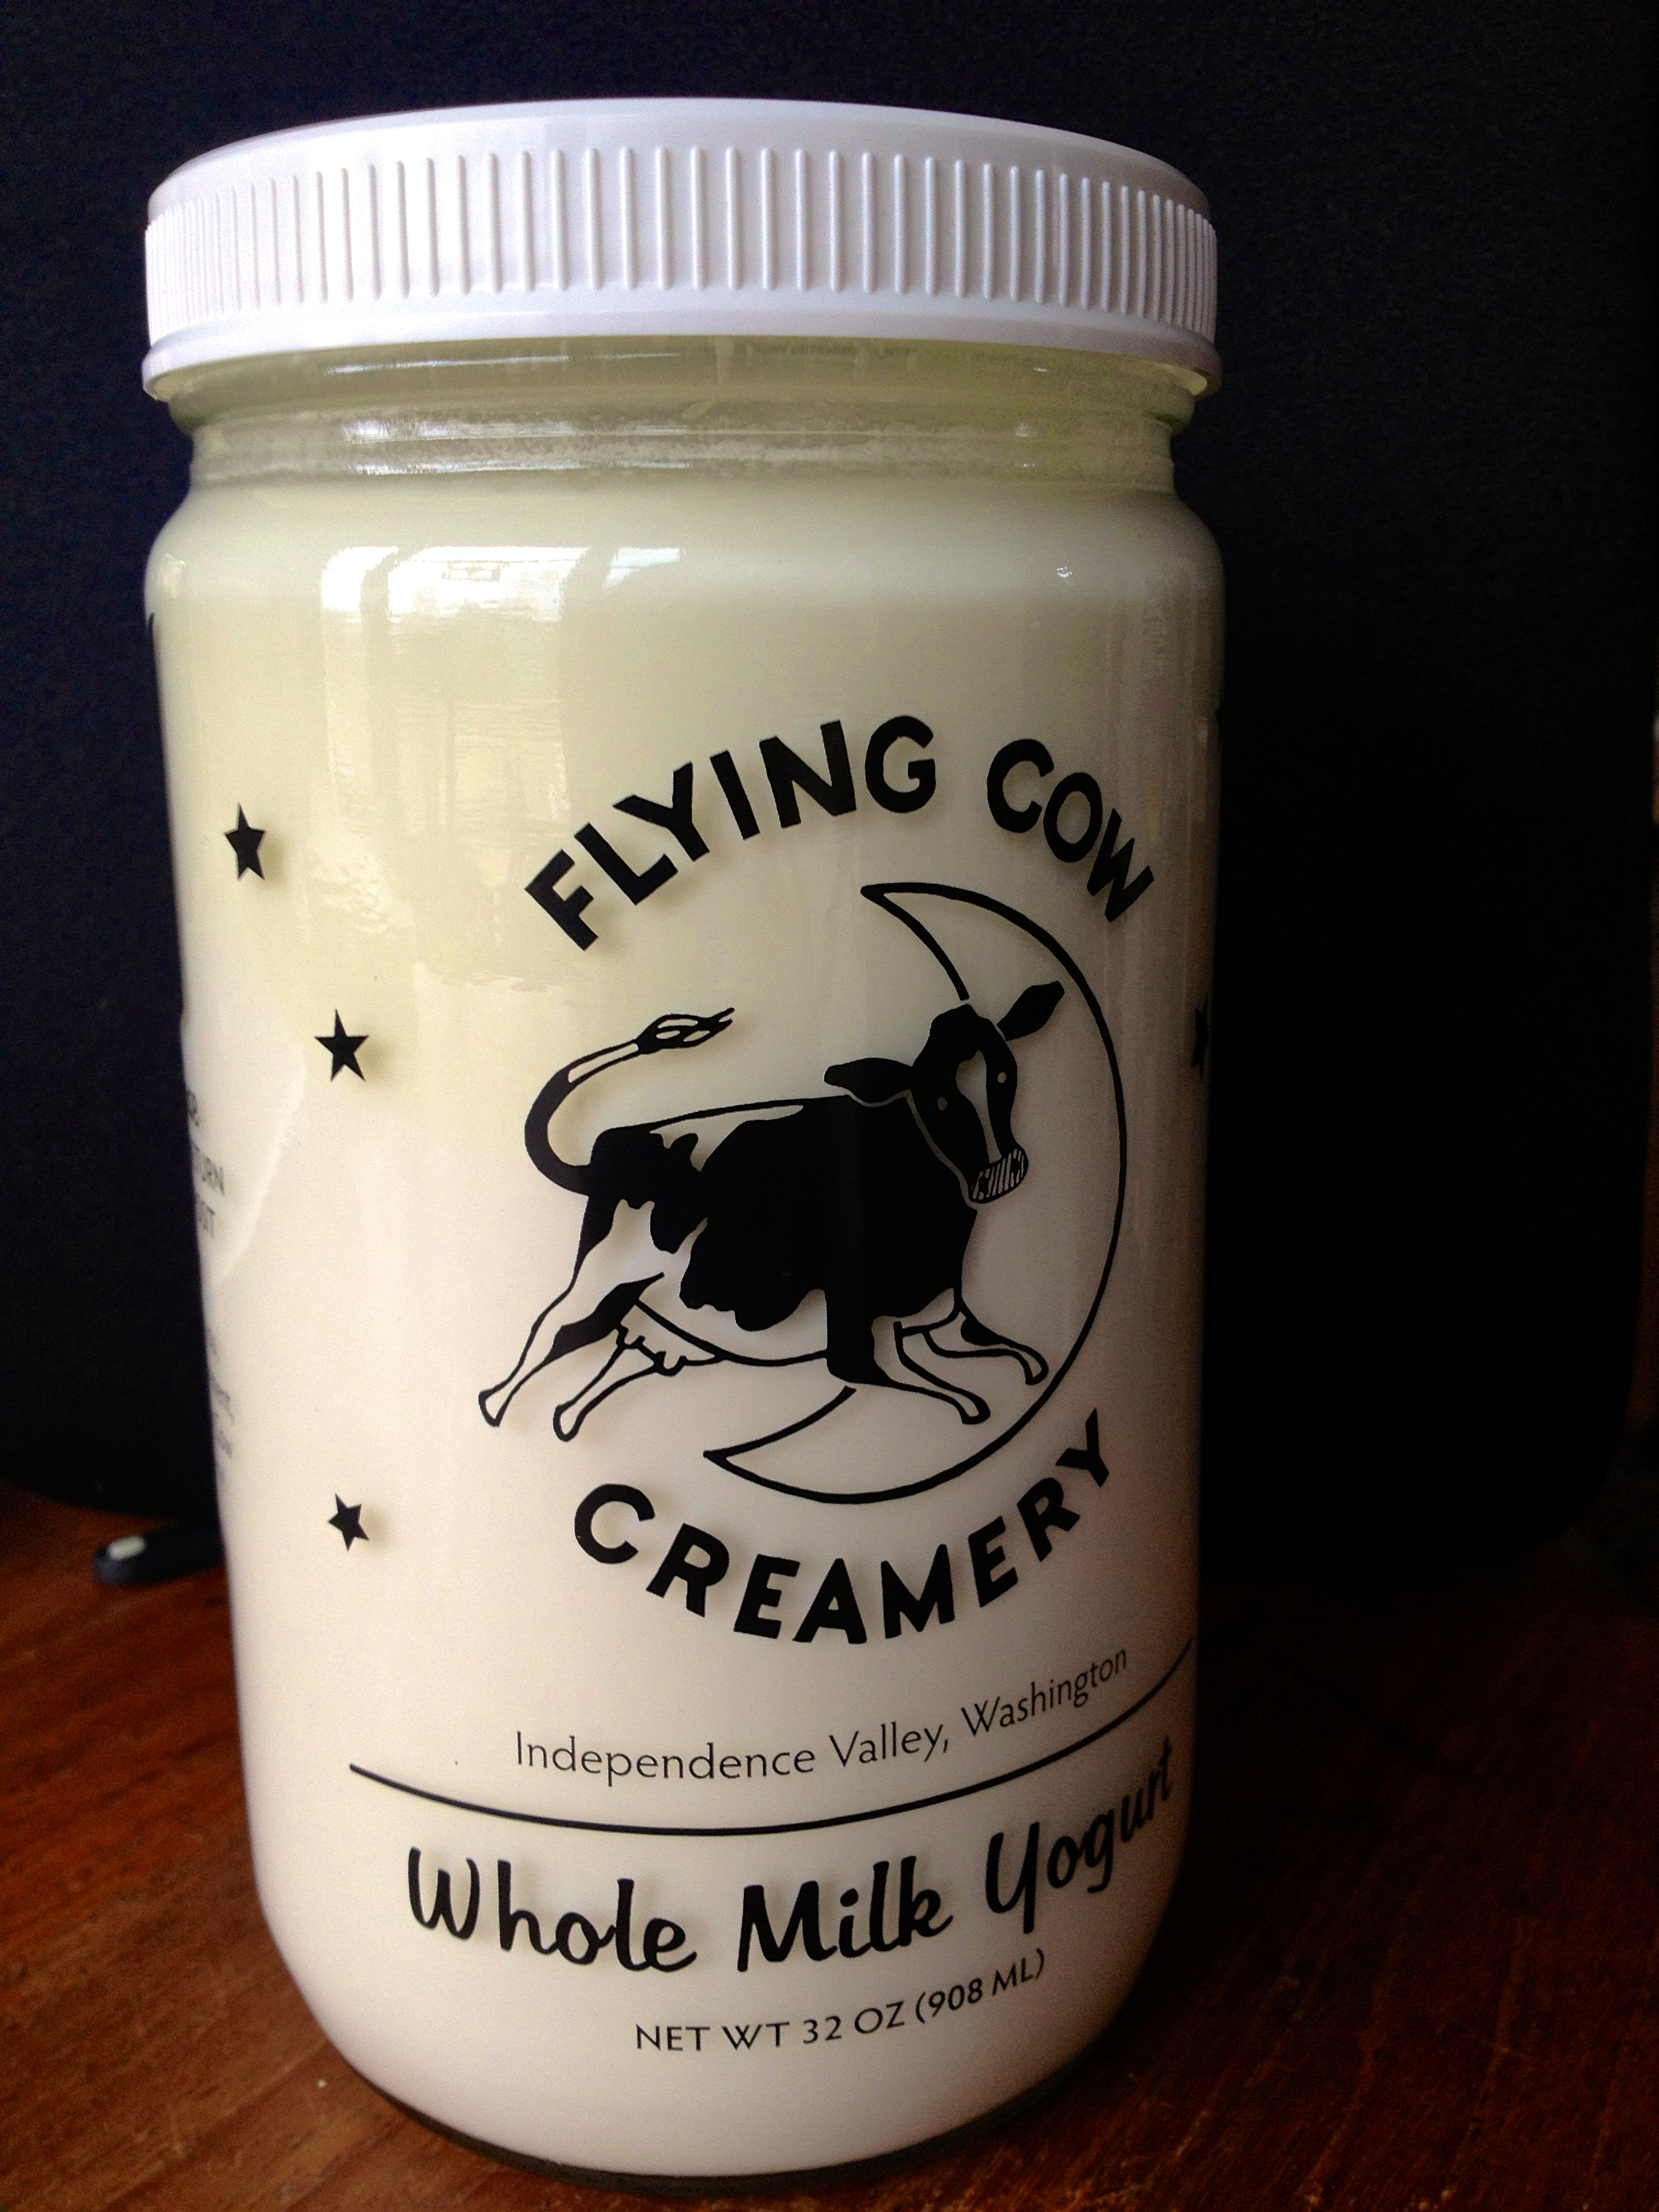 Flying Cow Creamery Yogurt Share - Flying Cow Creamery makes yogurt the old-fashioned way: no additives and no thickeners, just milk and yogurt culture. The way yogurt should be! The cows that provide the milk for this product are raised on a small farm in beautiful Independence Valley, WA.Two 32 oz. jars will be delivered every other week (9 deliveries $15/week $135 for the season) in a reusable cooler bag. We would like members to return cooler bag and jars weekly with CSA box to prepare for the following week's delivery.Please note: Our Flying Cow Creamery Yogurt Share is only open to full-season CSA members. Thank you!